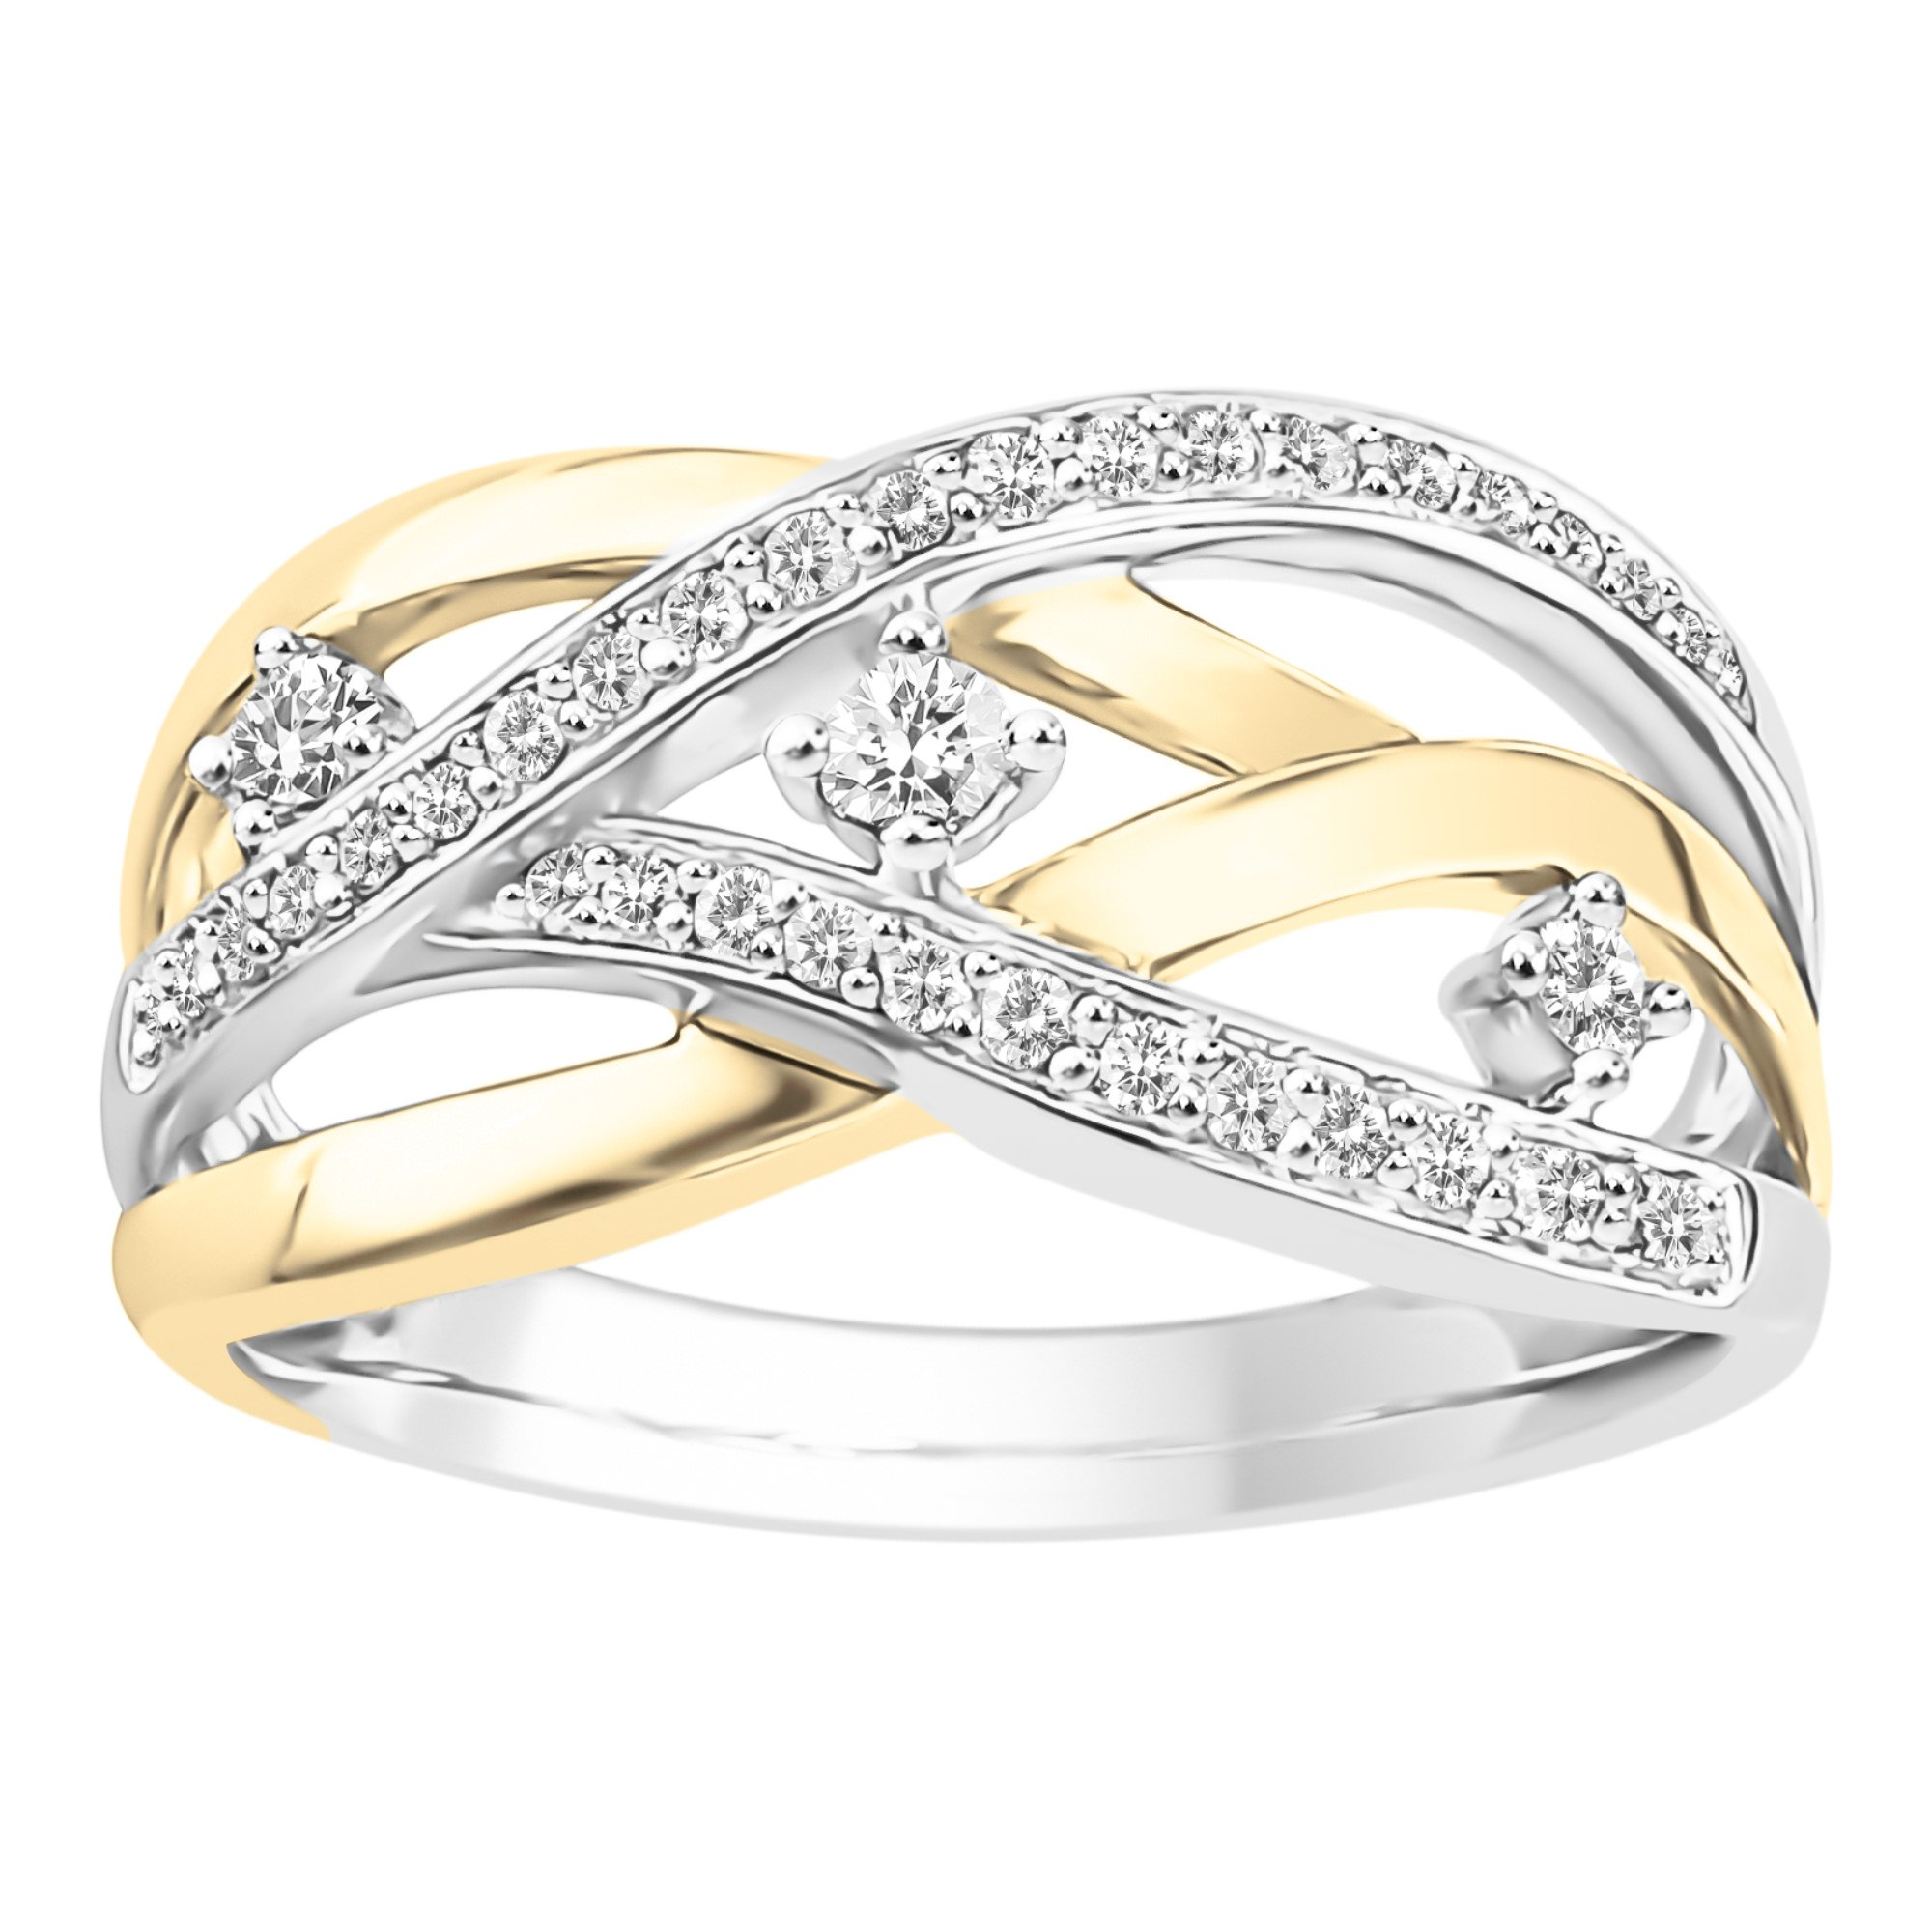 10K White & Yellow Gold 1/4cttw Diamond Crossover Ring